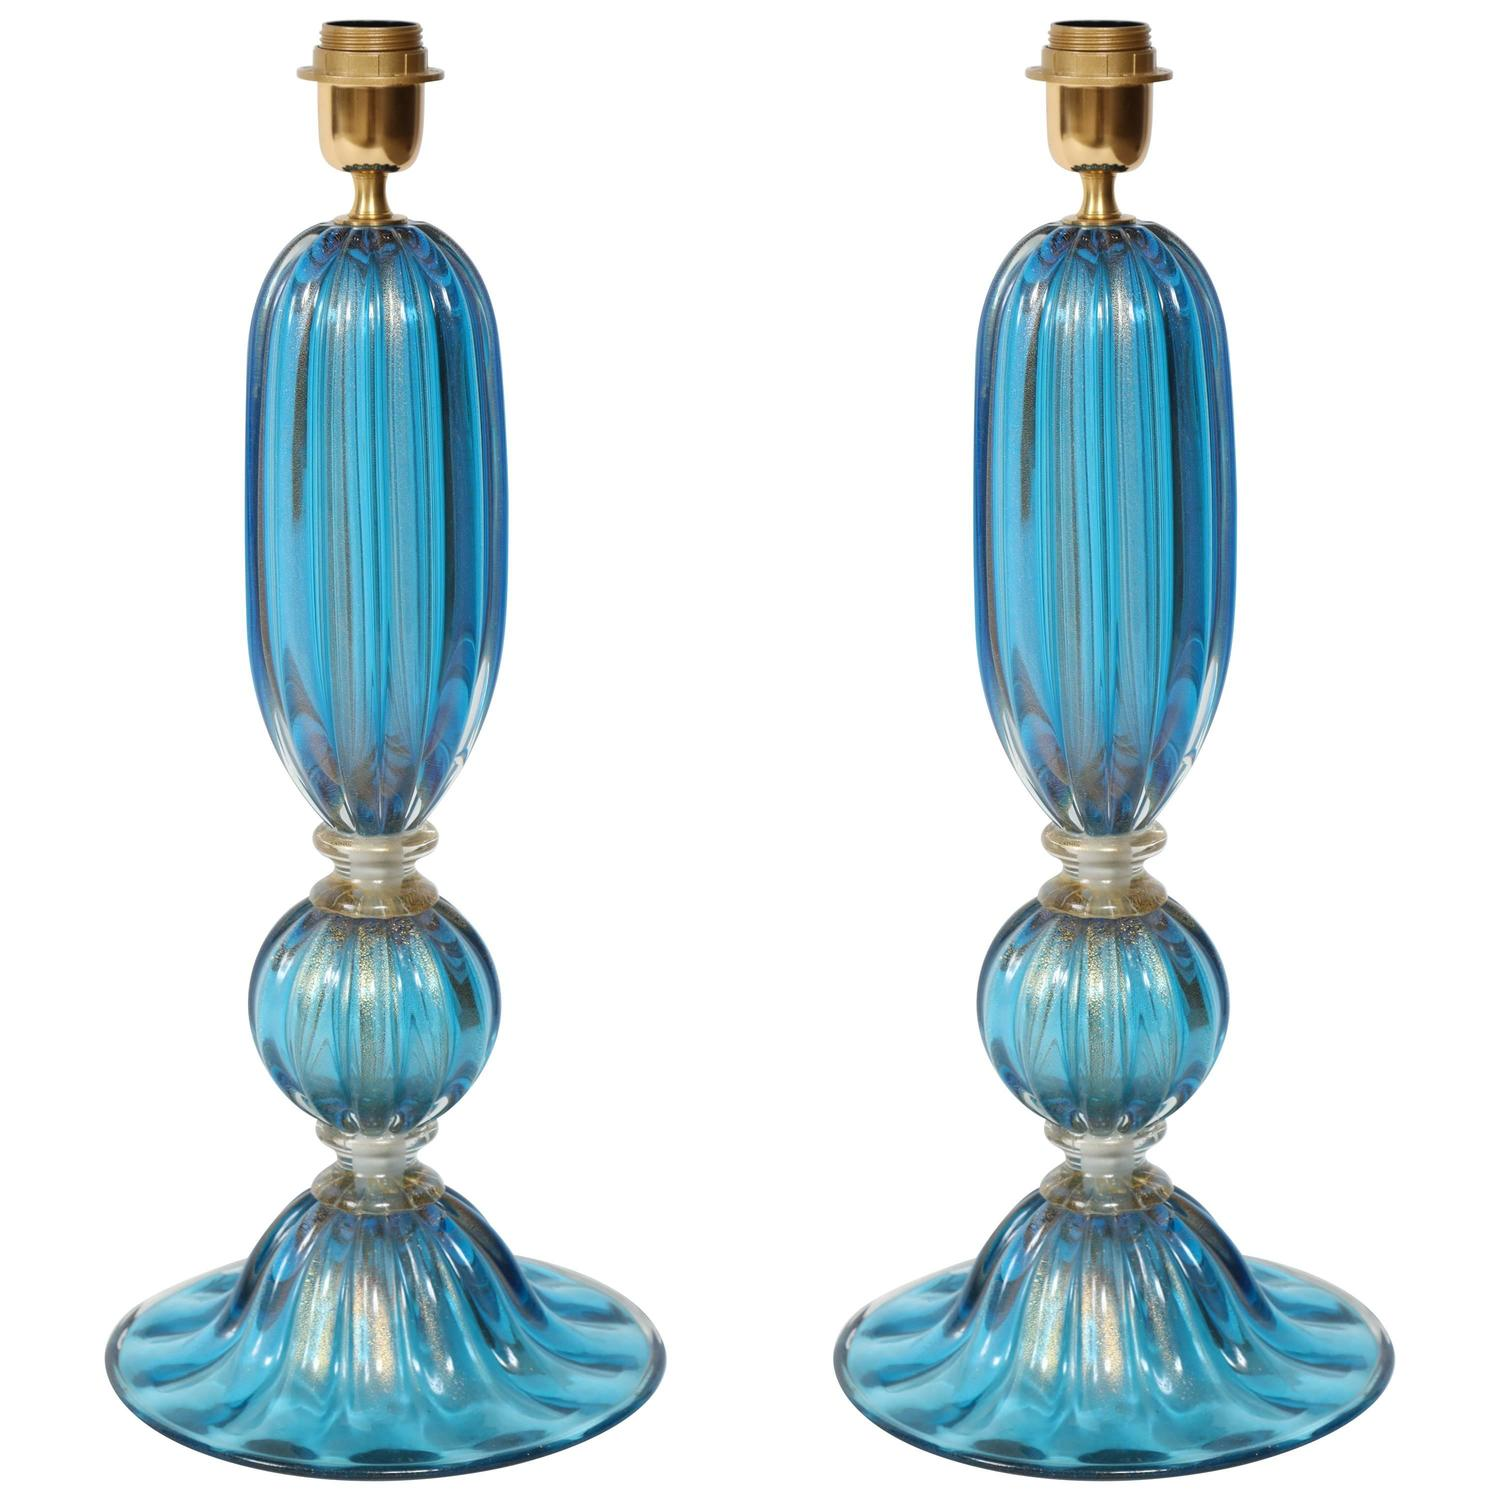 pair of blue murano glass lamps for sale at 1stdibs. Black Bedroom Furniture Sets. Home Design Ideas